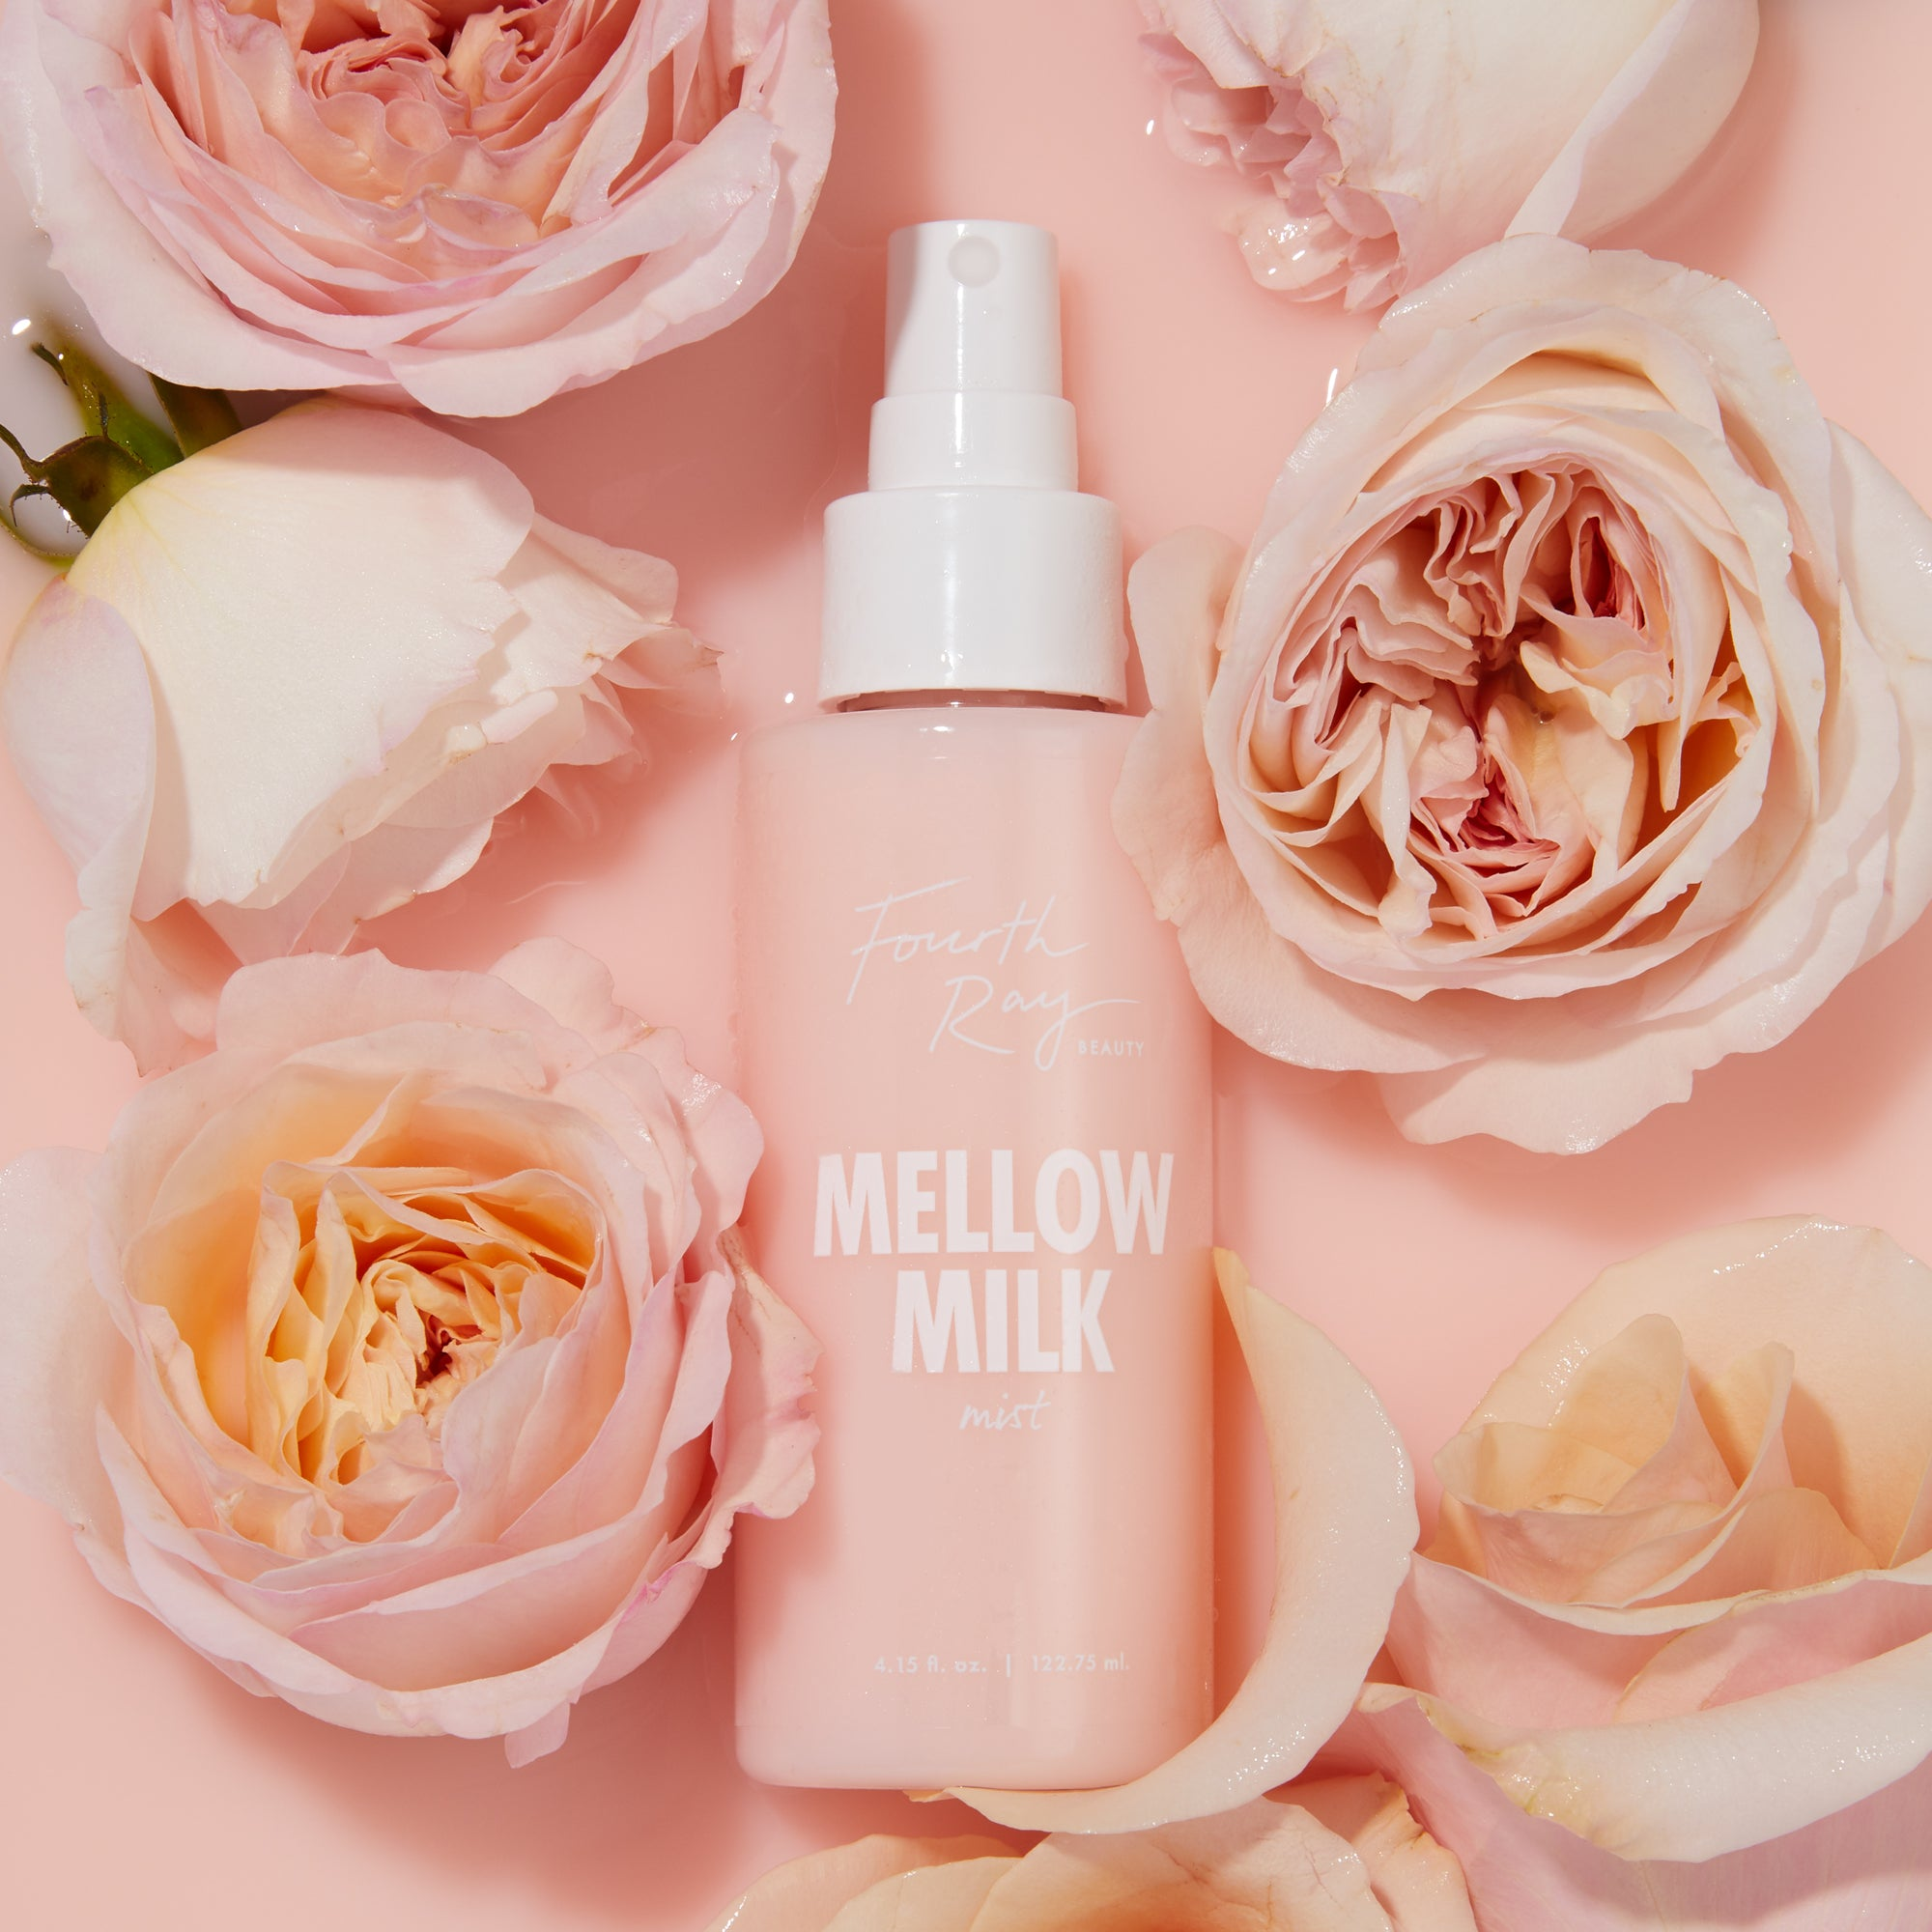 Mellow Milk Mist , floating in pink milk with pink roses